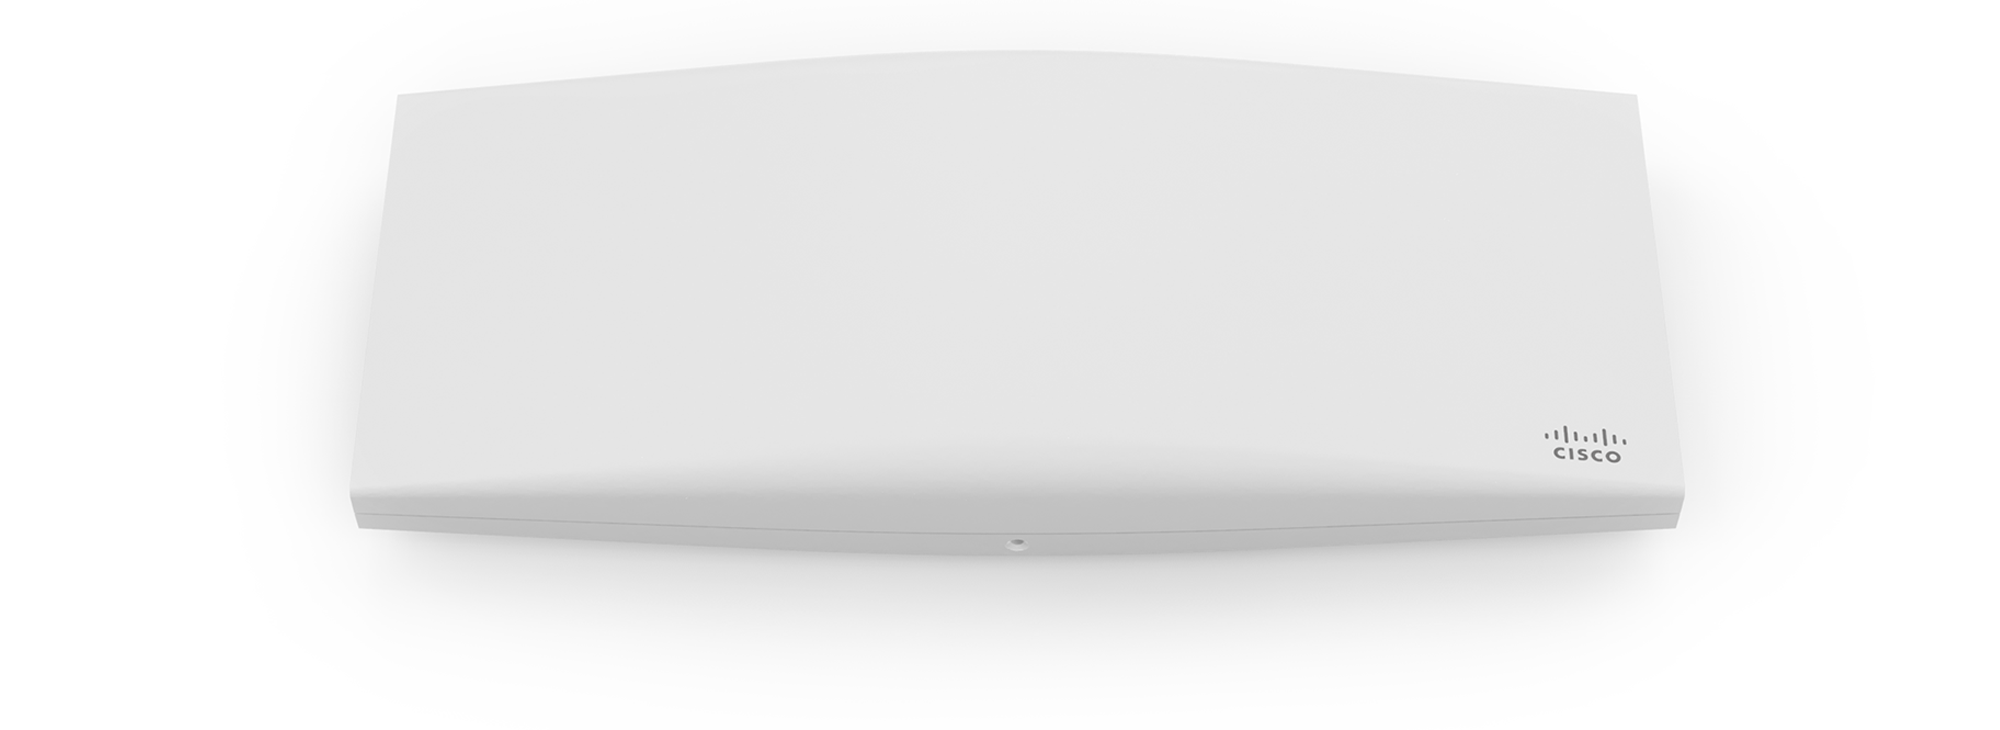 Wireless Access Point for Business - Irvine, Los Angeles, Phoenix